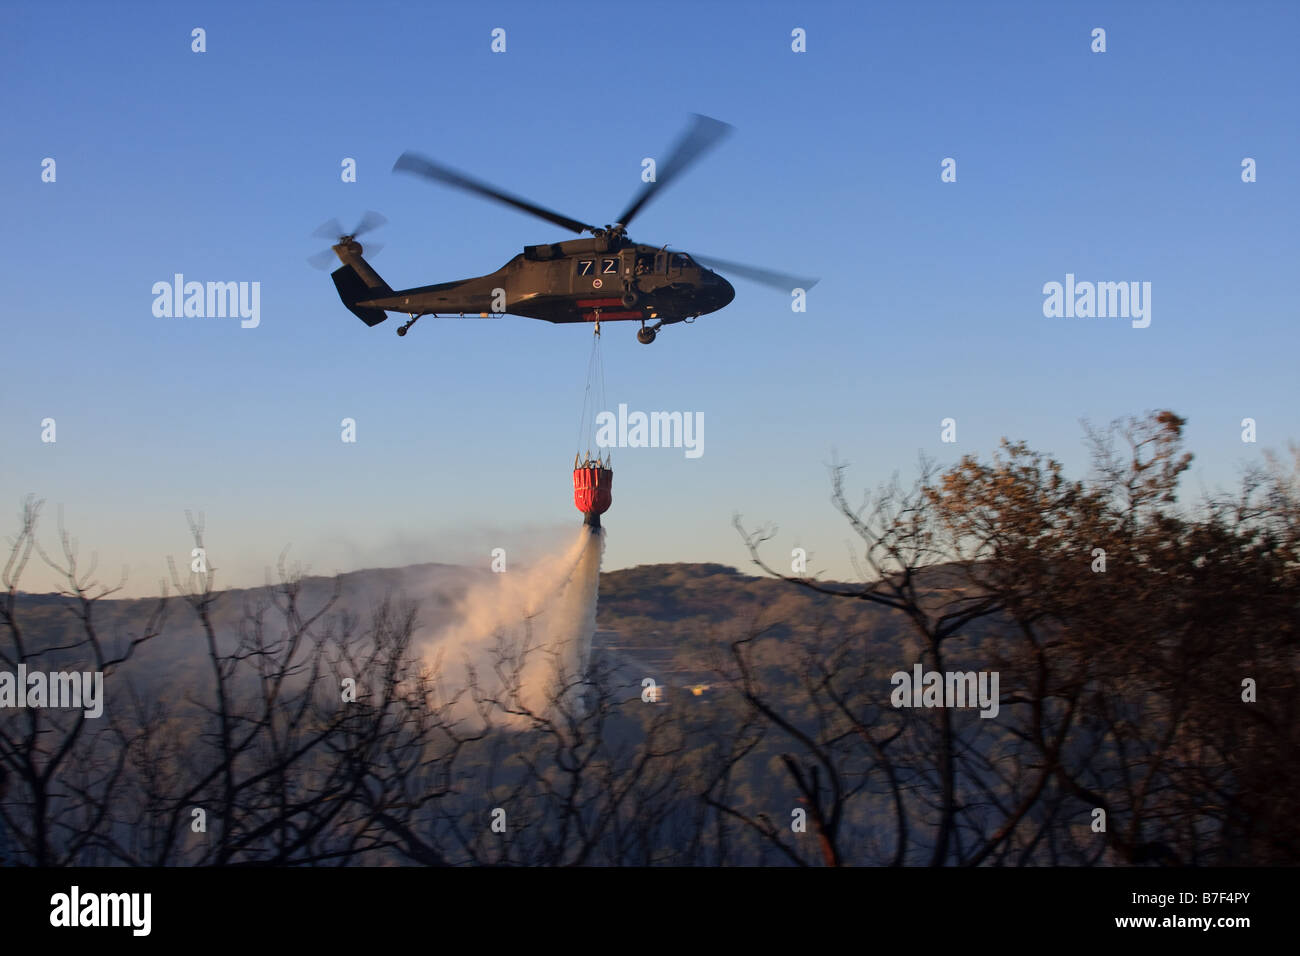 Sikorsky UH-60 Black Hawk helicopter dumping water on a fire. - Stock Image